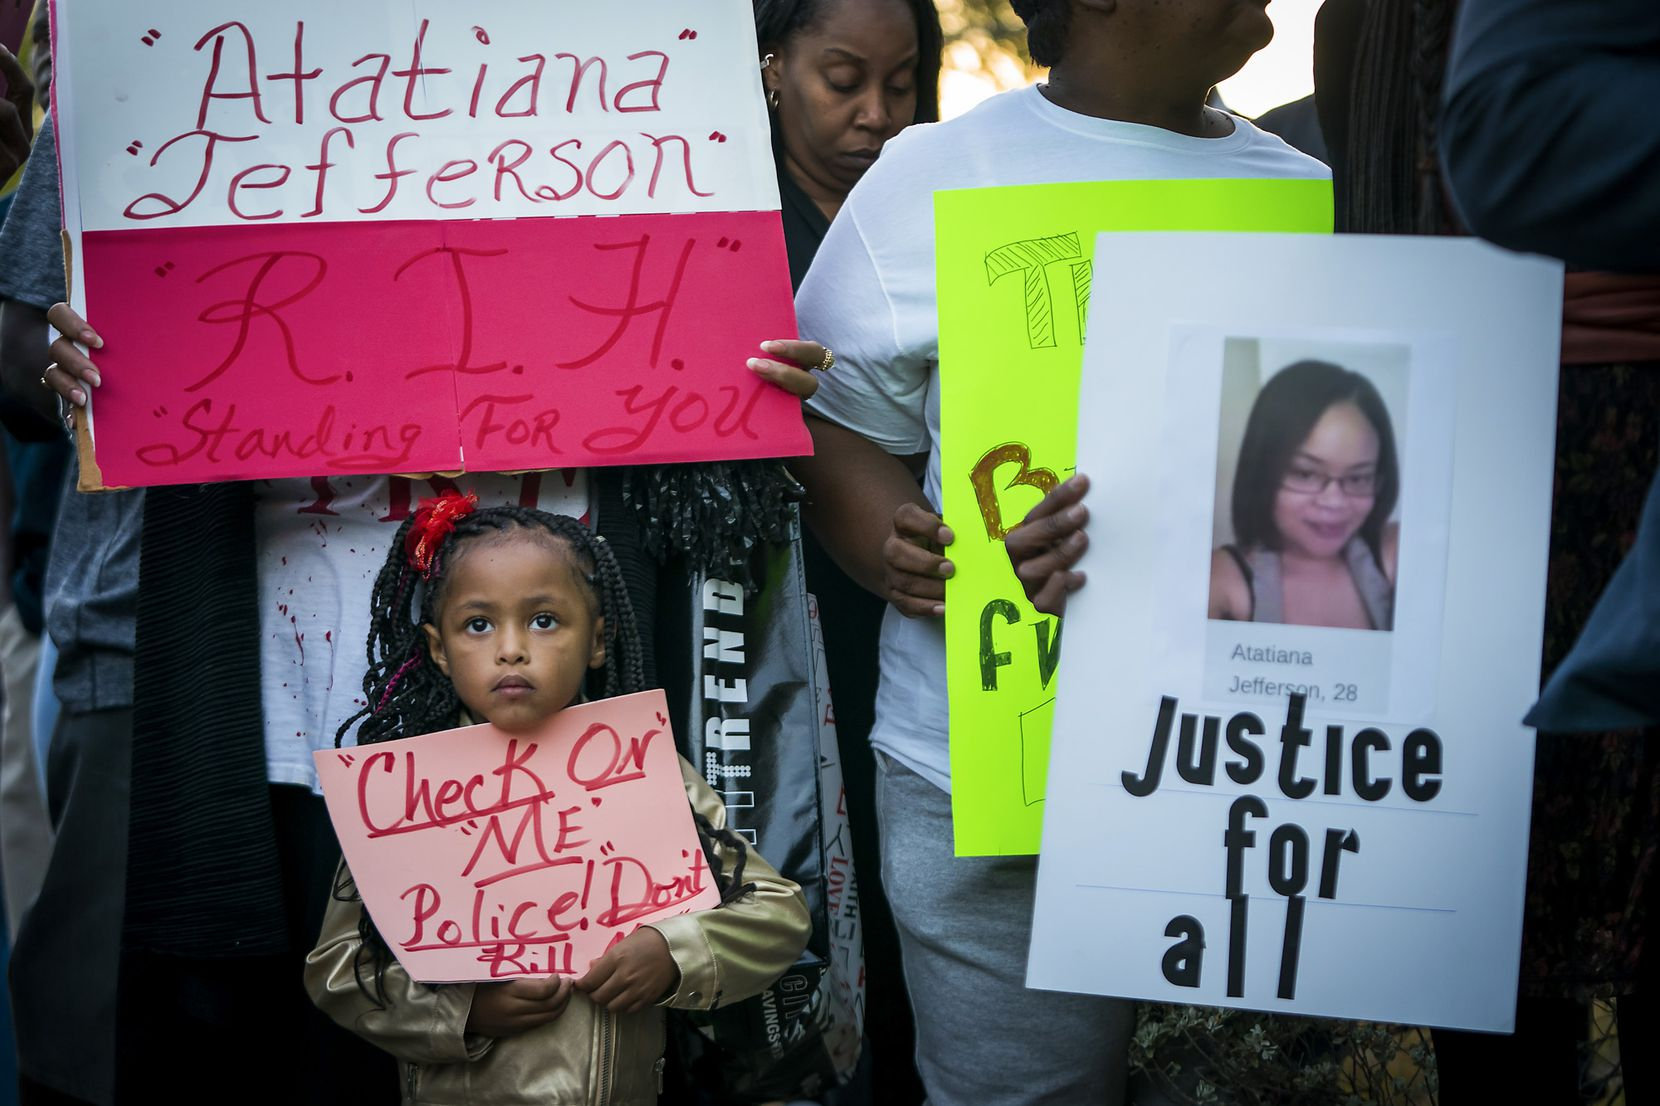 Trinity Ford, 4, was among the crowd gathered during a community vigil for Atatiana Jefferson on Sunday, Oct. 13, 2019, in Fort Worth.